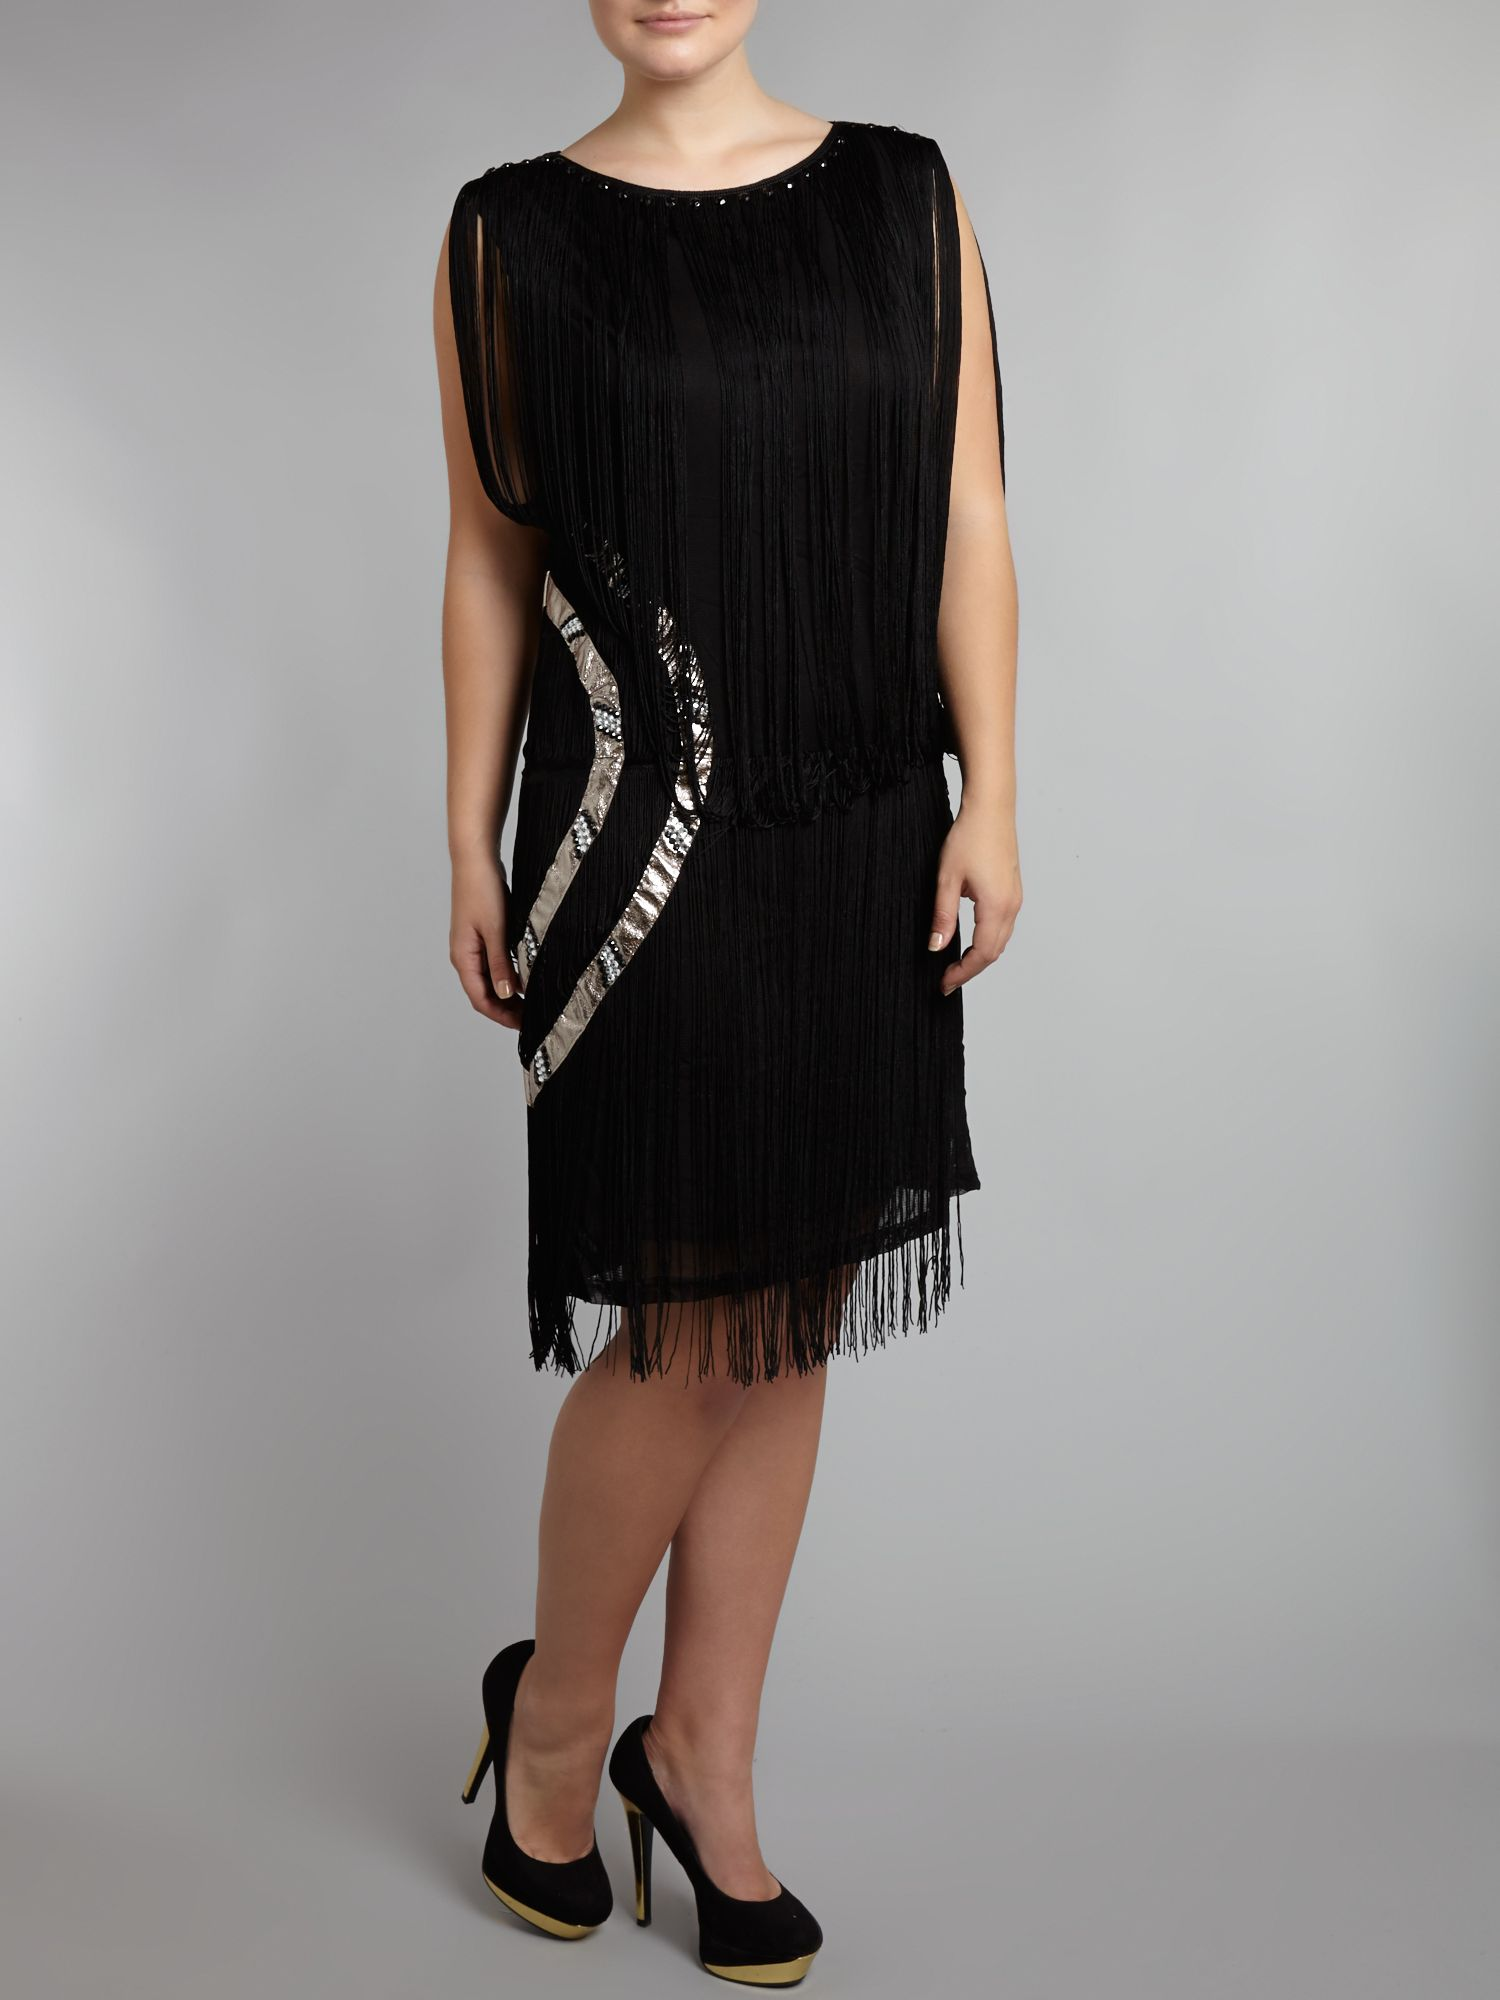 Sleeveless diamante tassle dress